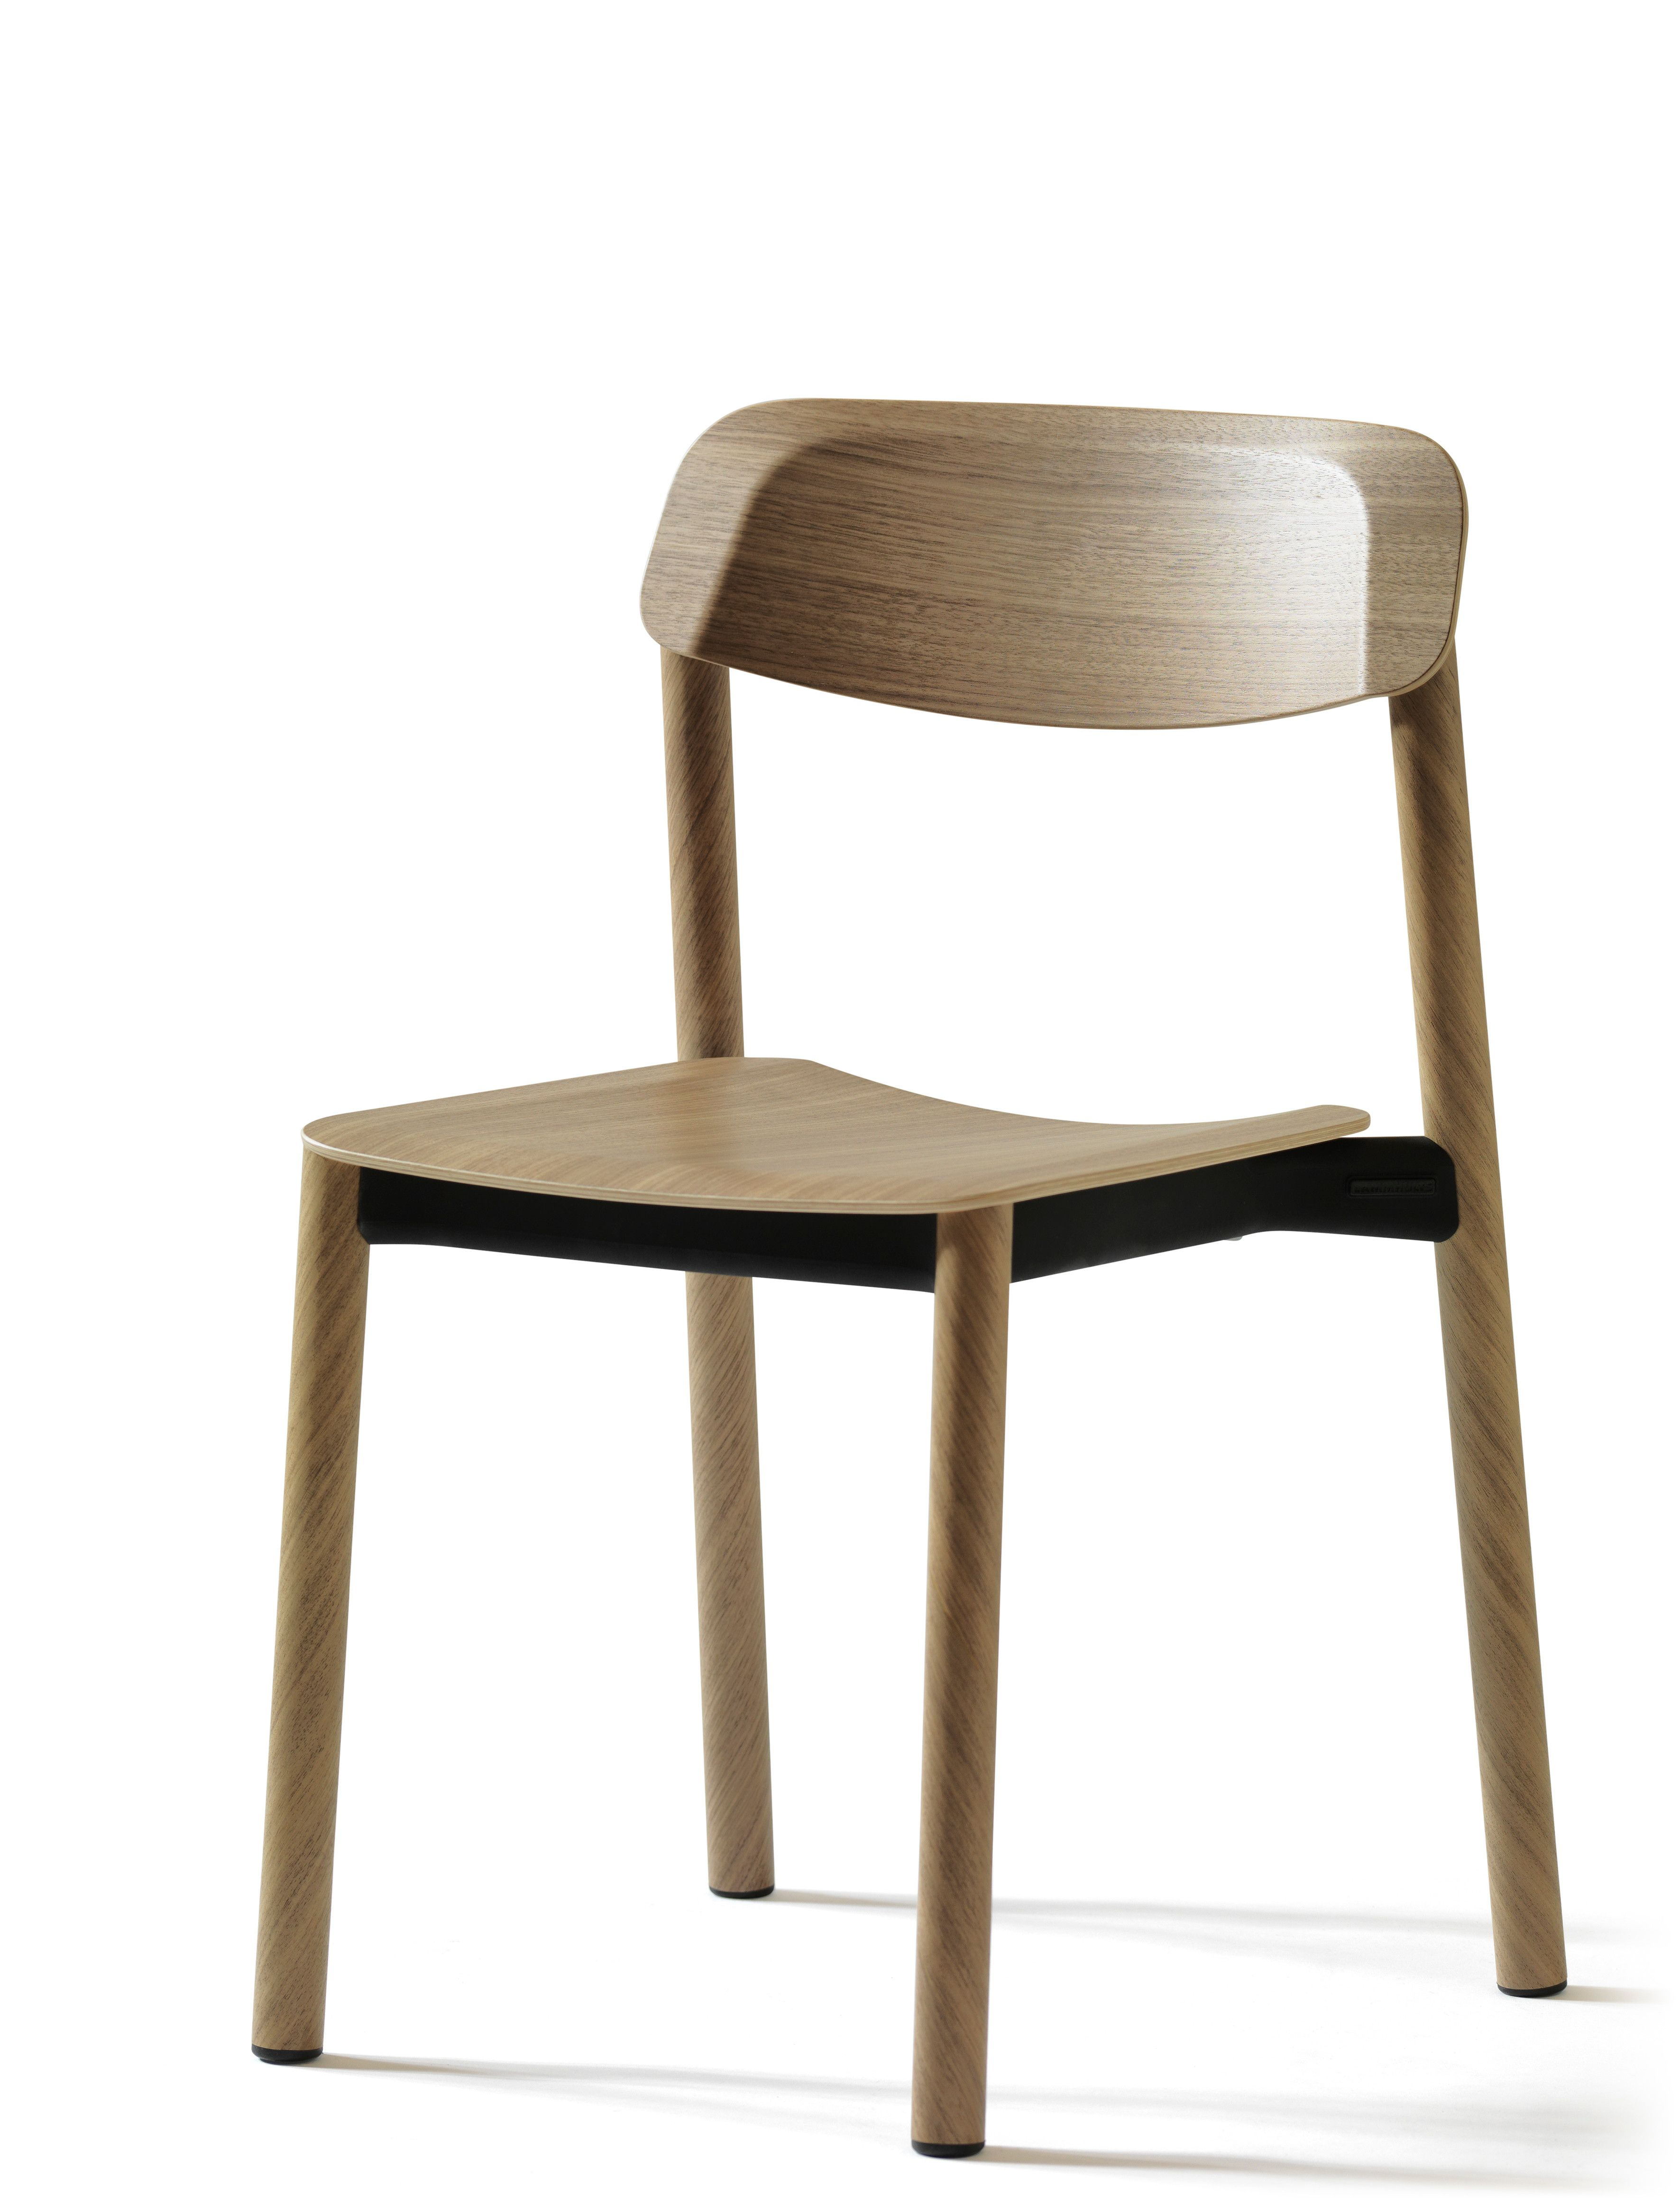 Penne The Worlds First Chair With Legs Made Of Laminated